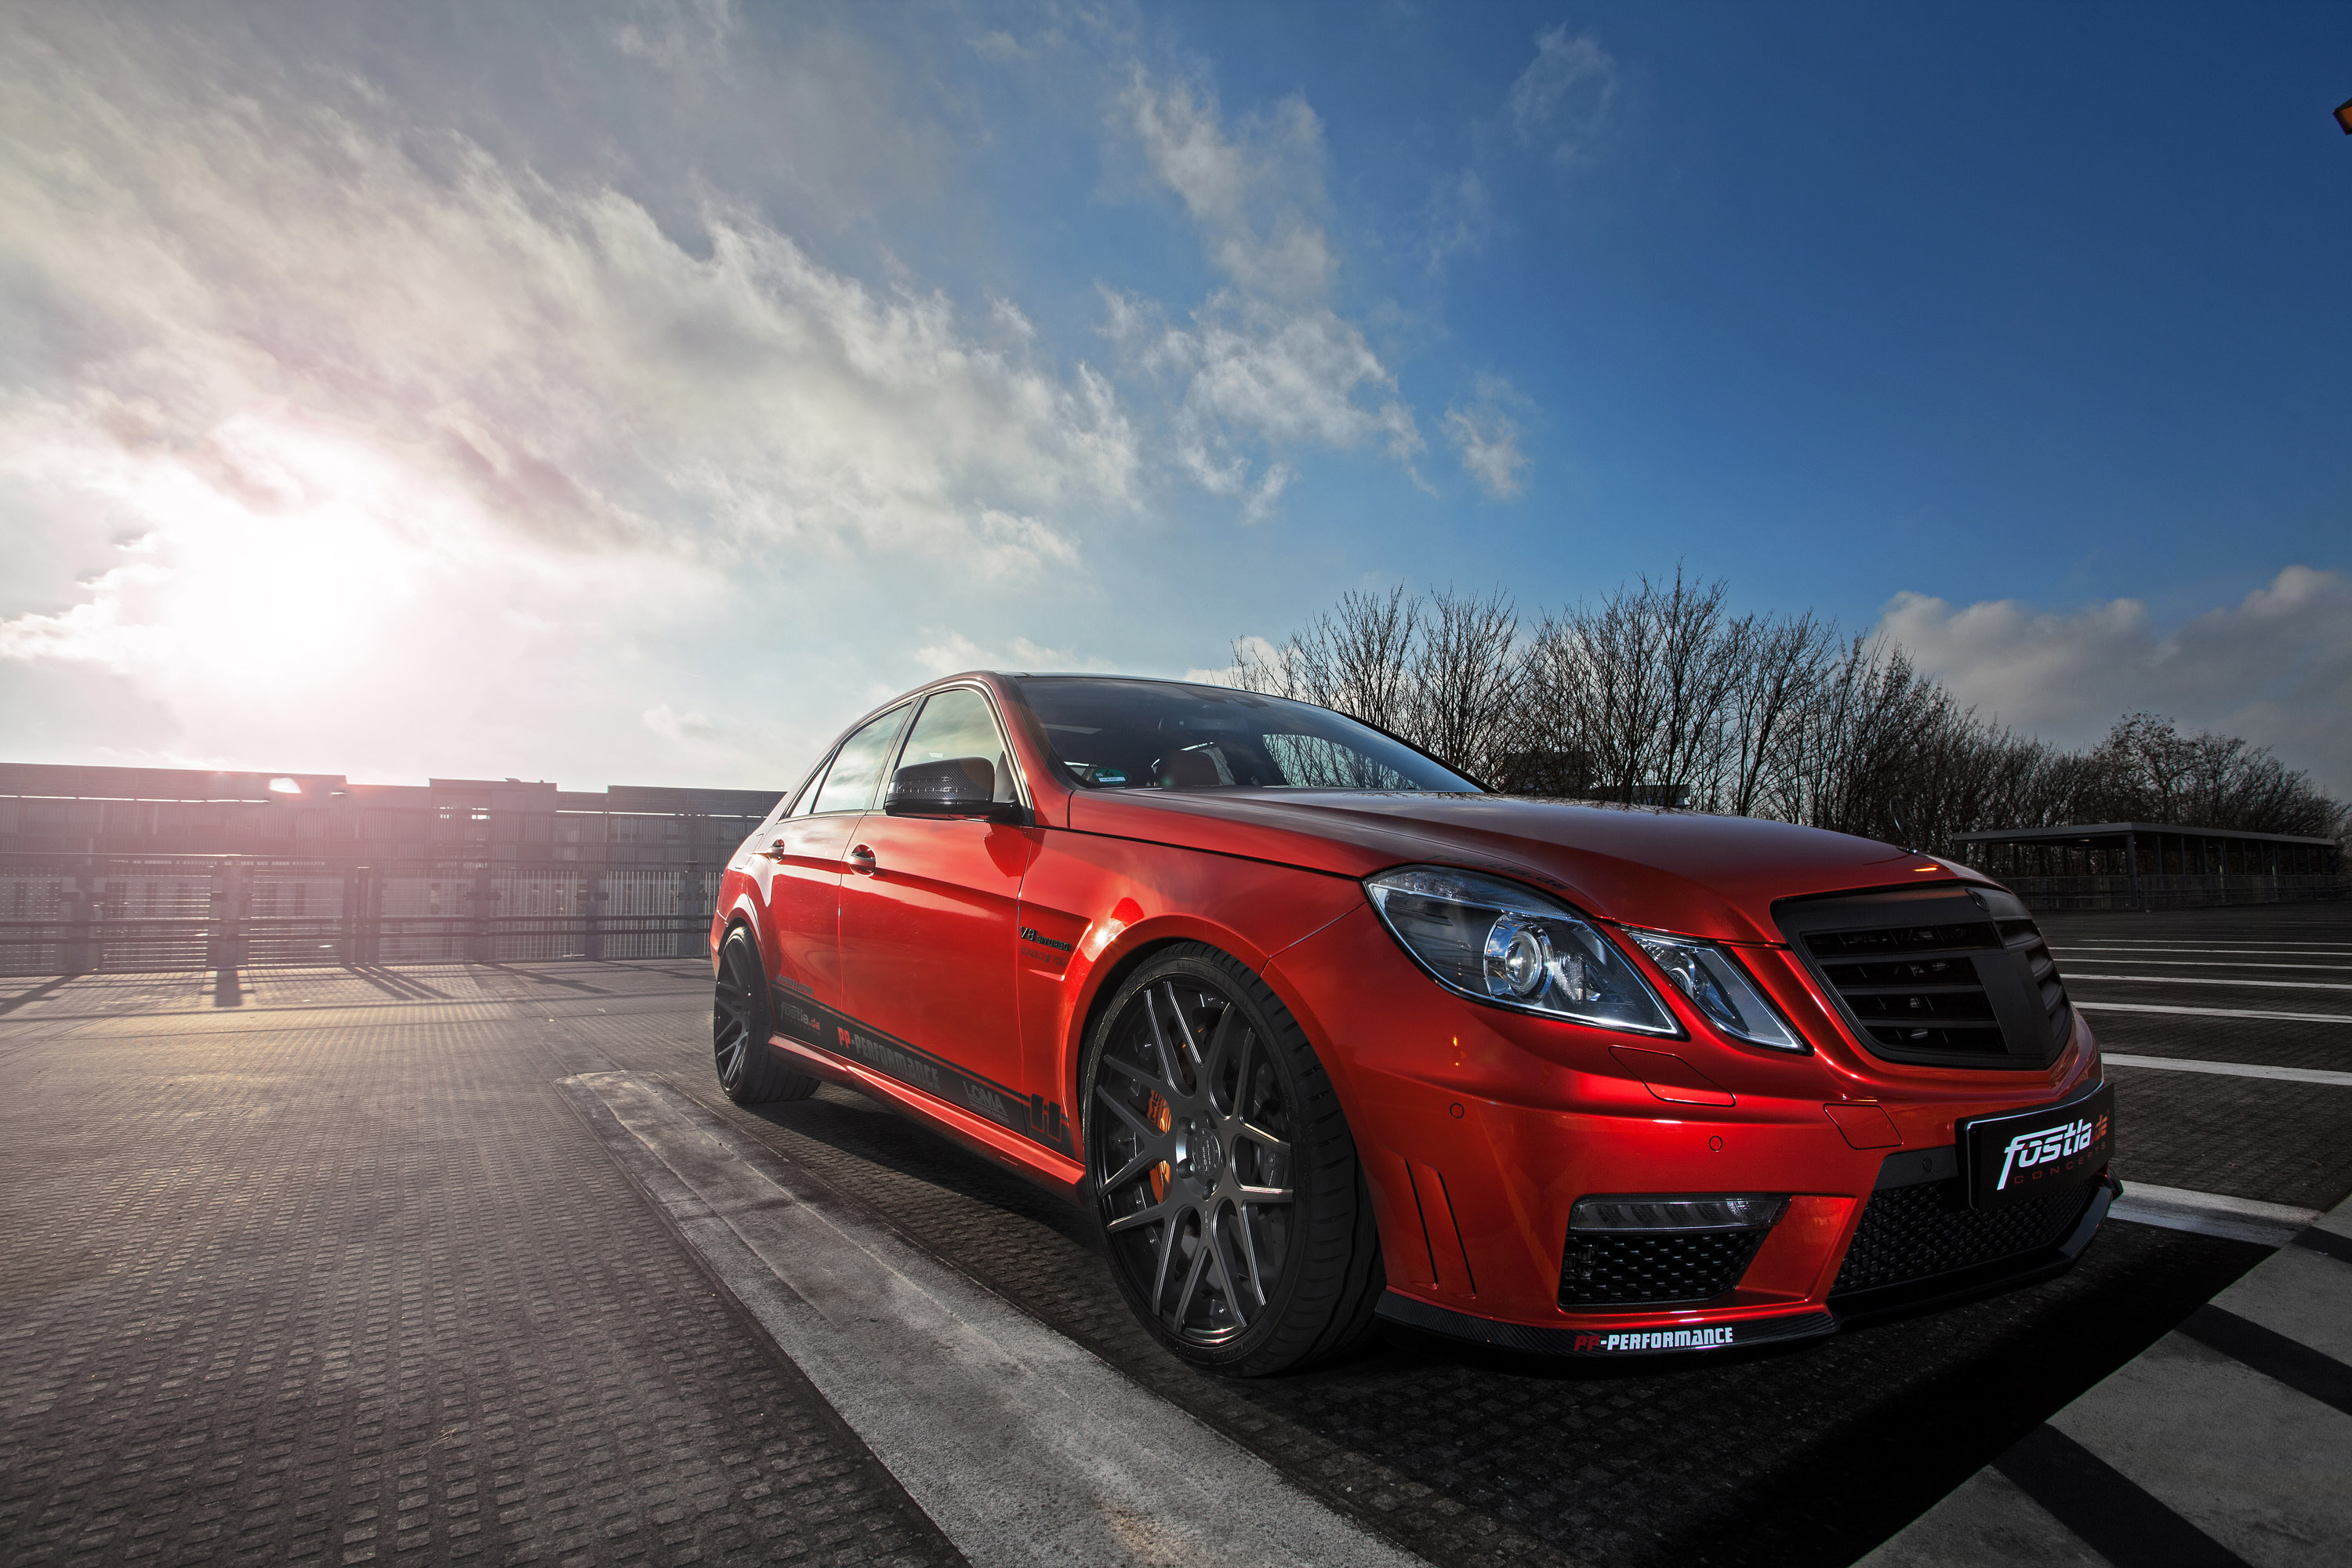 Mercedes benz e 63 amg w212 wows with 720 wild horses for Mercedes benz e 63 amg